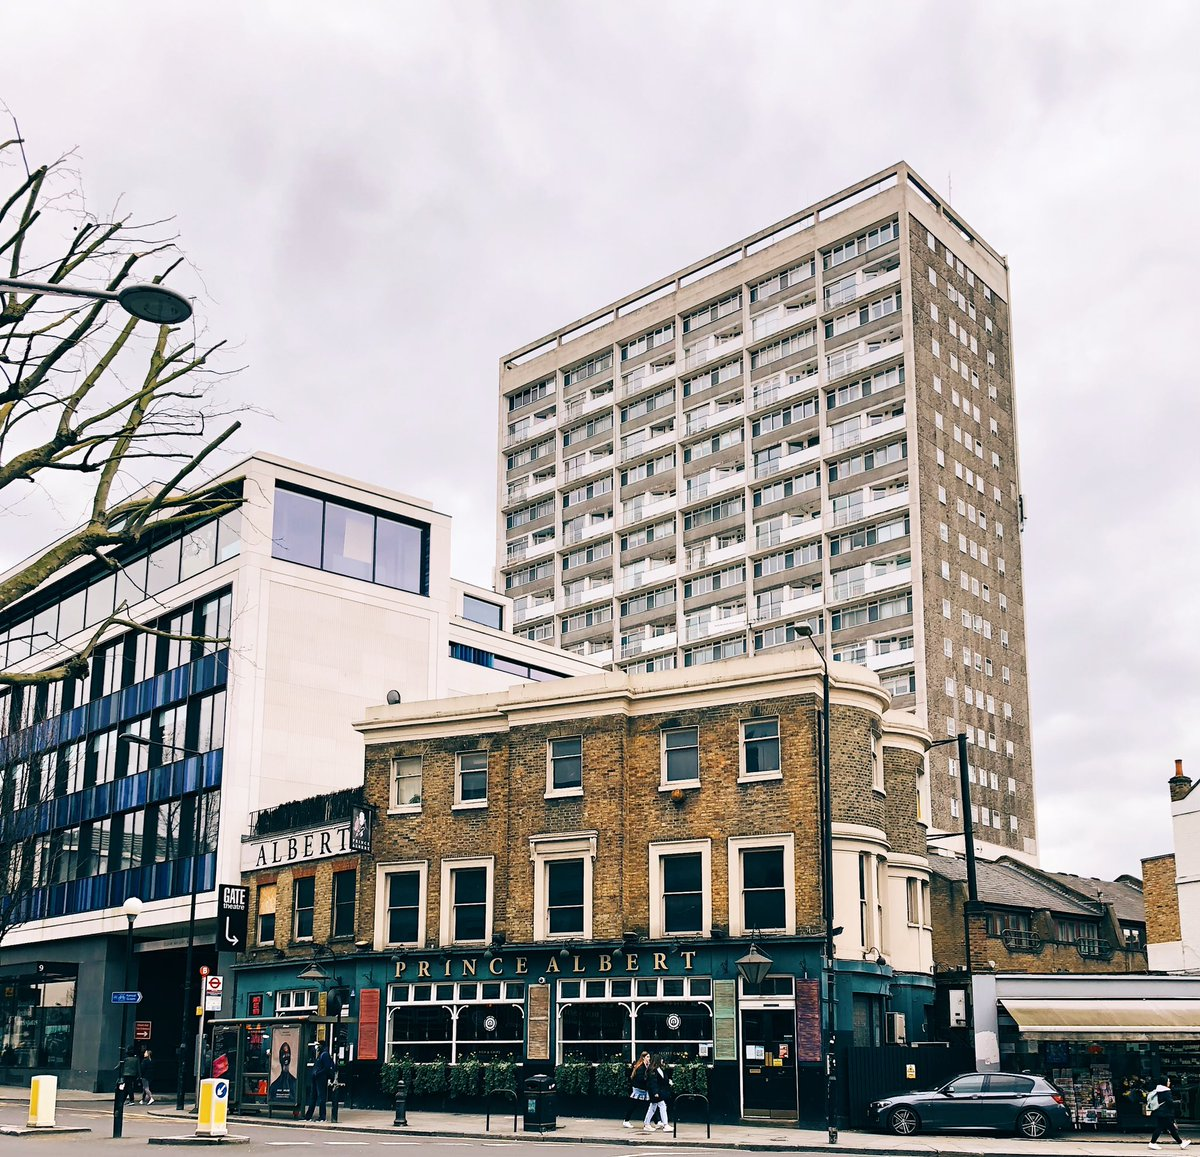 Notting Hill // March 2021 #photography #nottinghill #london #vsco #theprincealbert